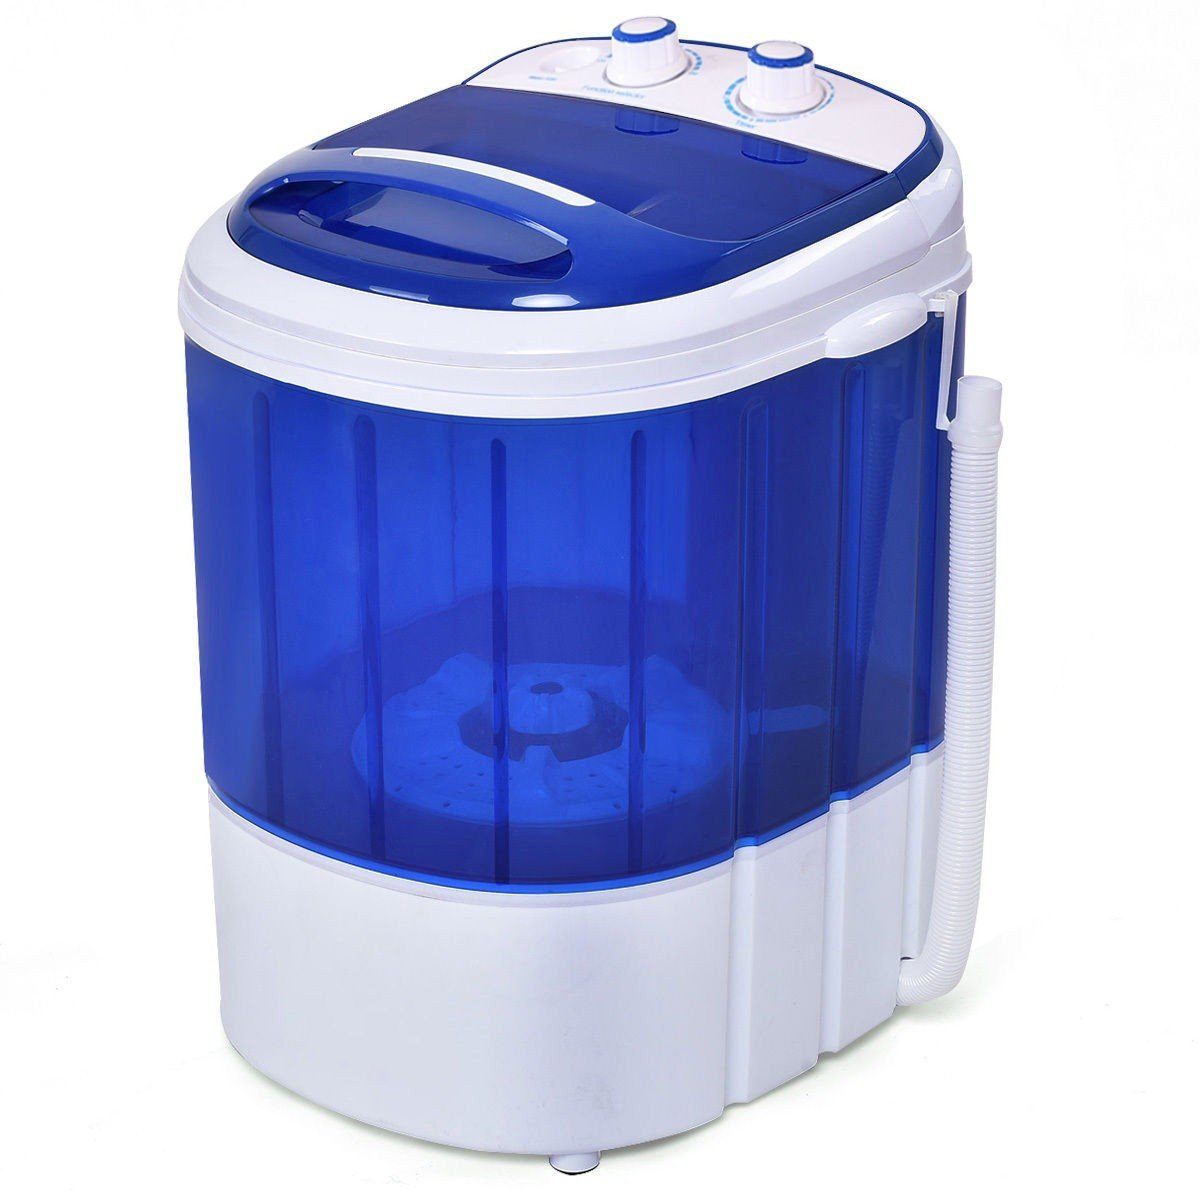 MD Group Mini Portable Washer Washing Machine by MD Group (Image #1)